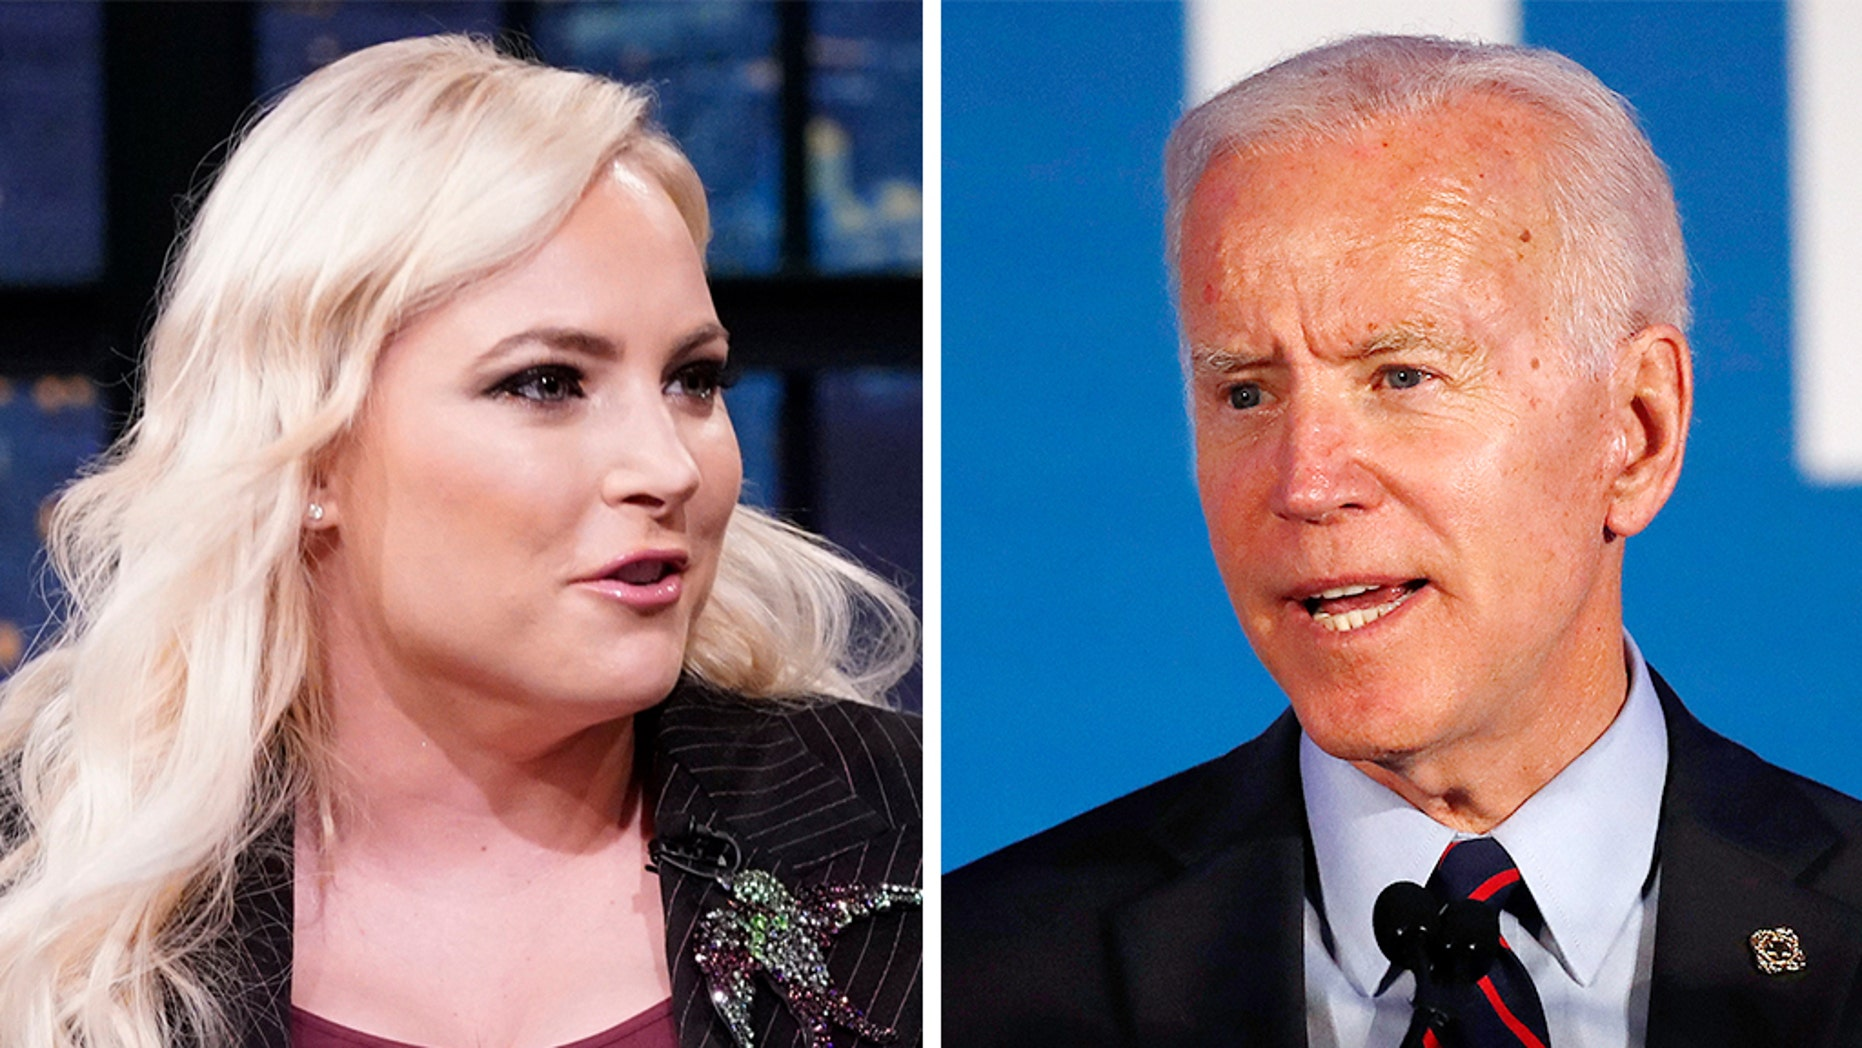 """During a heated discourse on """"The View"""" on Monday about <a data-cke-saved-href=""""https://www.foxnews.com/category/person/joe-biden"""" href=""""https://www.foxnews.com/category/person/joe-biden"""" target=""""_blank"""">Joe Biden</a> changing his tune about the controversial Hyde Amendment, host <a data-cke-saved-href=""""https://www.foxnews.com/category/person/meghan-mccain"""" href=""""https://www.foxnews.com/category/person/meghan-mccain"""" target=""""_blank"""">Meghan McCain</a> insinuated the former Vice President may have lost her support in the 2020 election"""